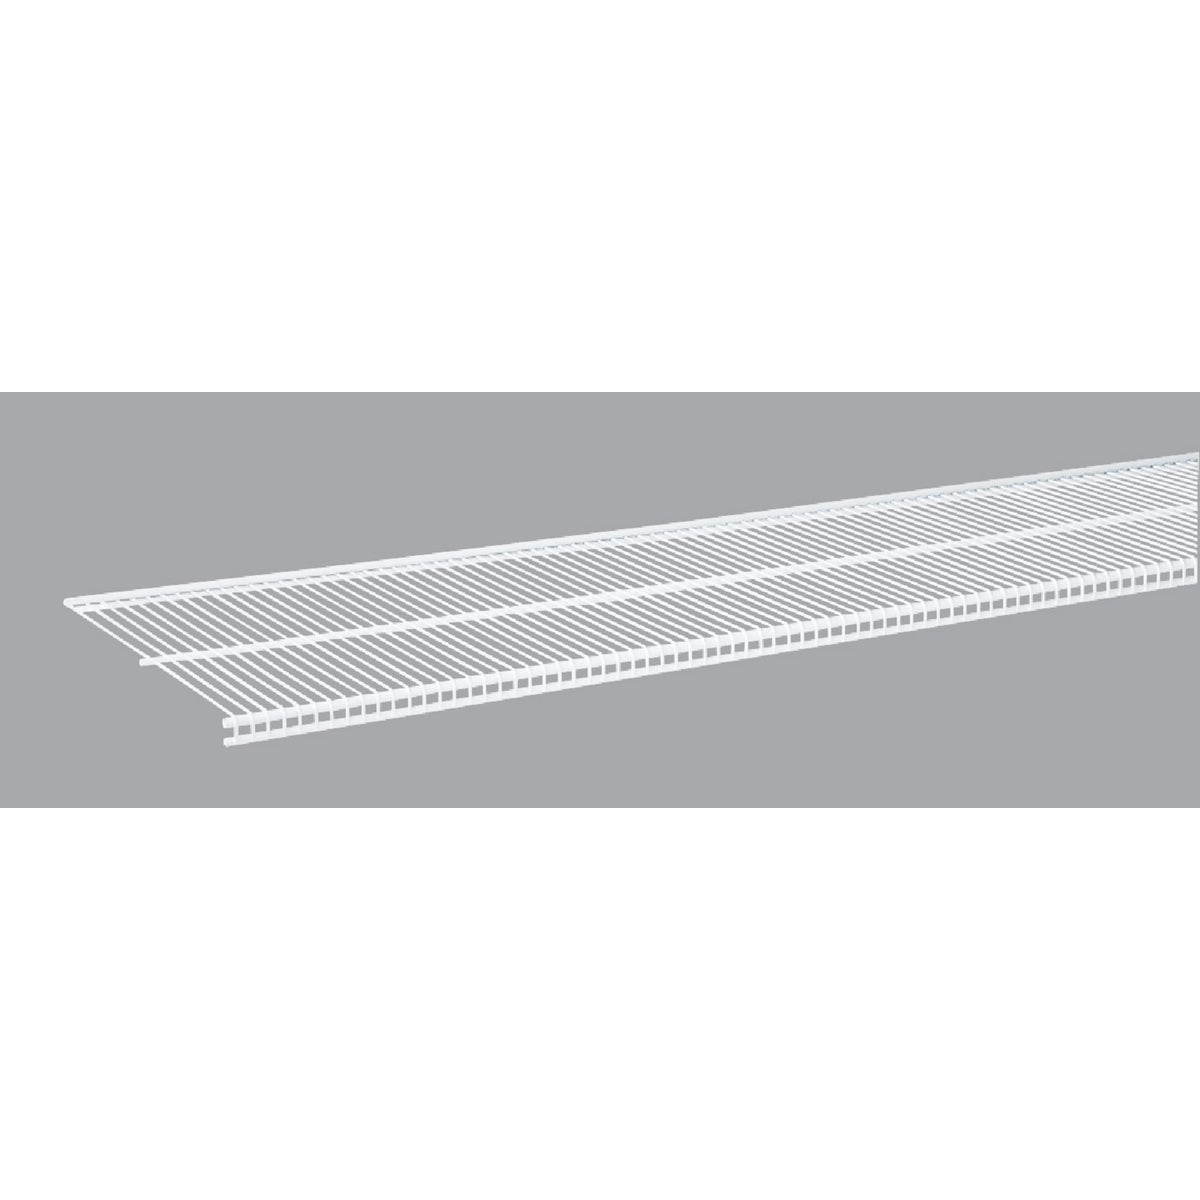 12X48 PROFILE SHELF - 1813124811 by Schulte Corp